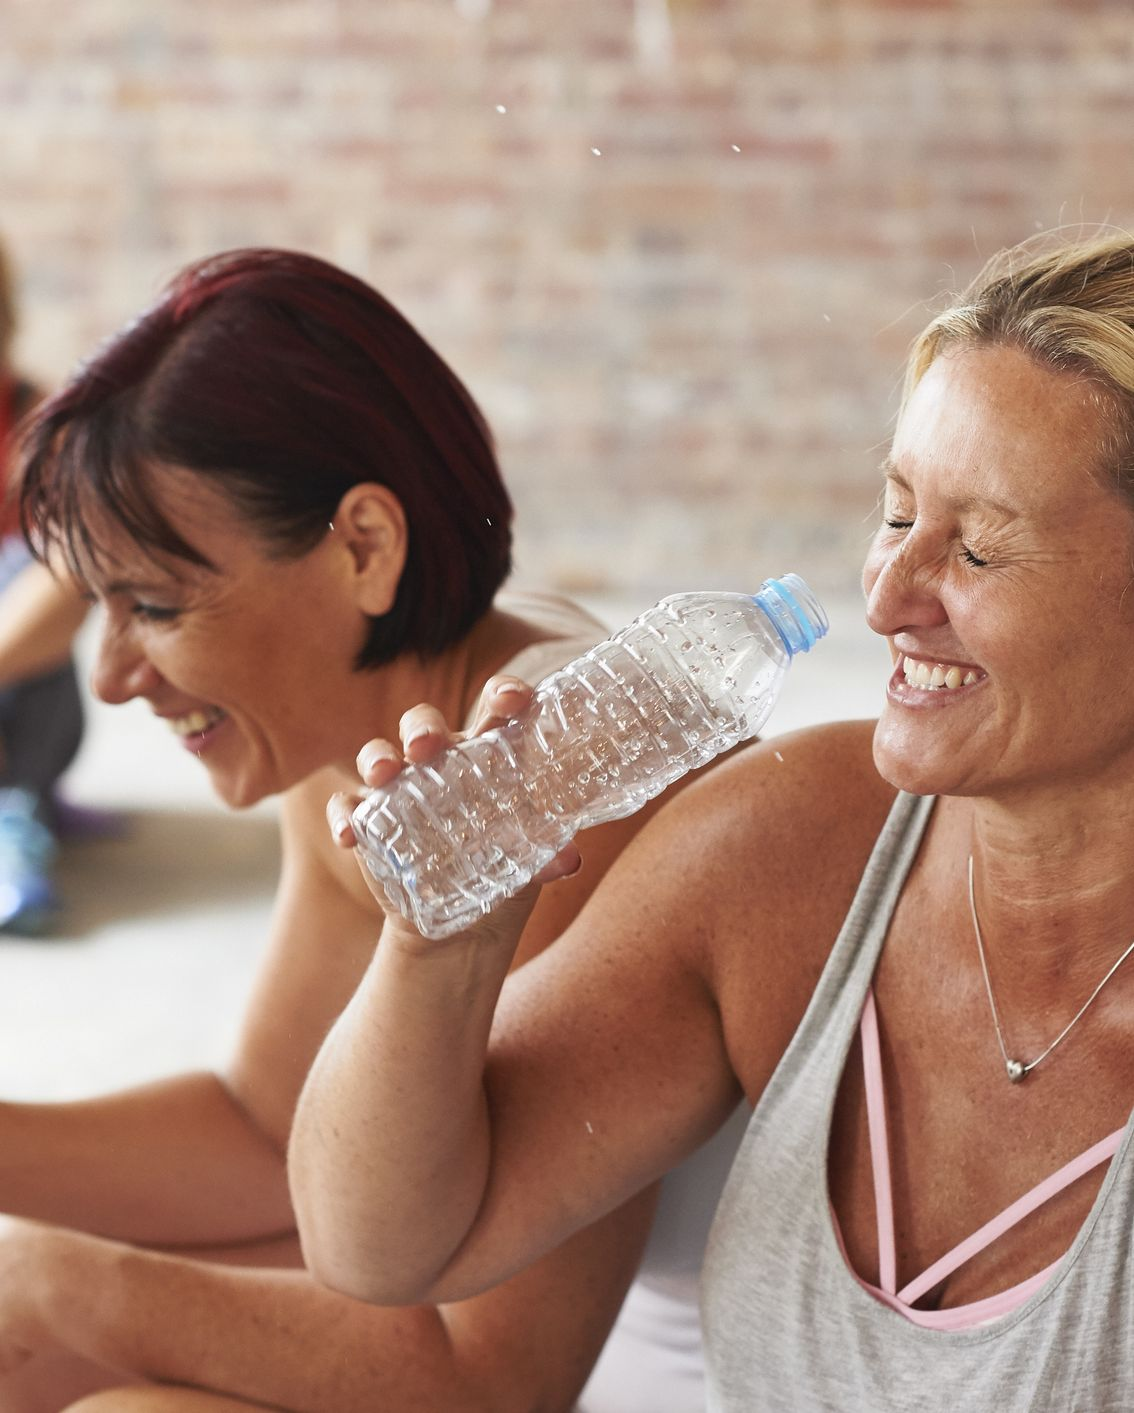 Try not to talk during a workout class. People pay big bucks to take motivating classes, and instructors work hard to cultivate a fun, enjoyable experience.